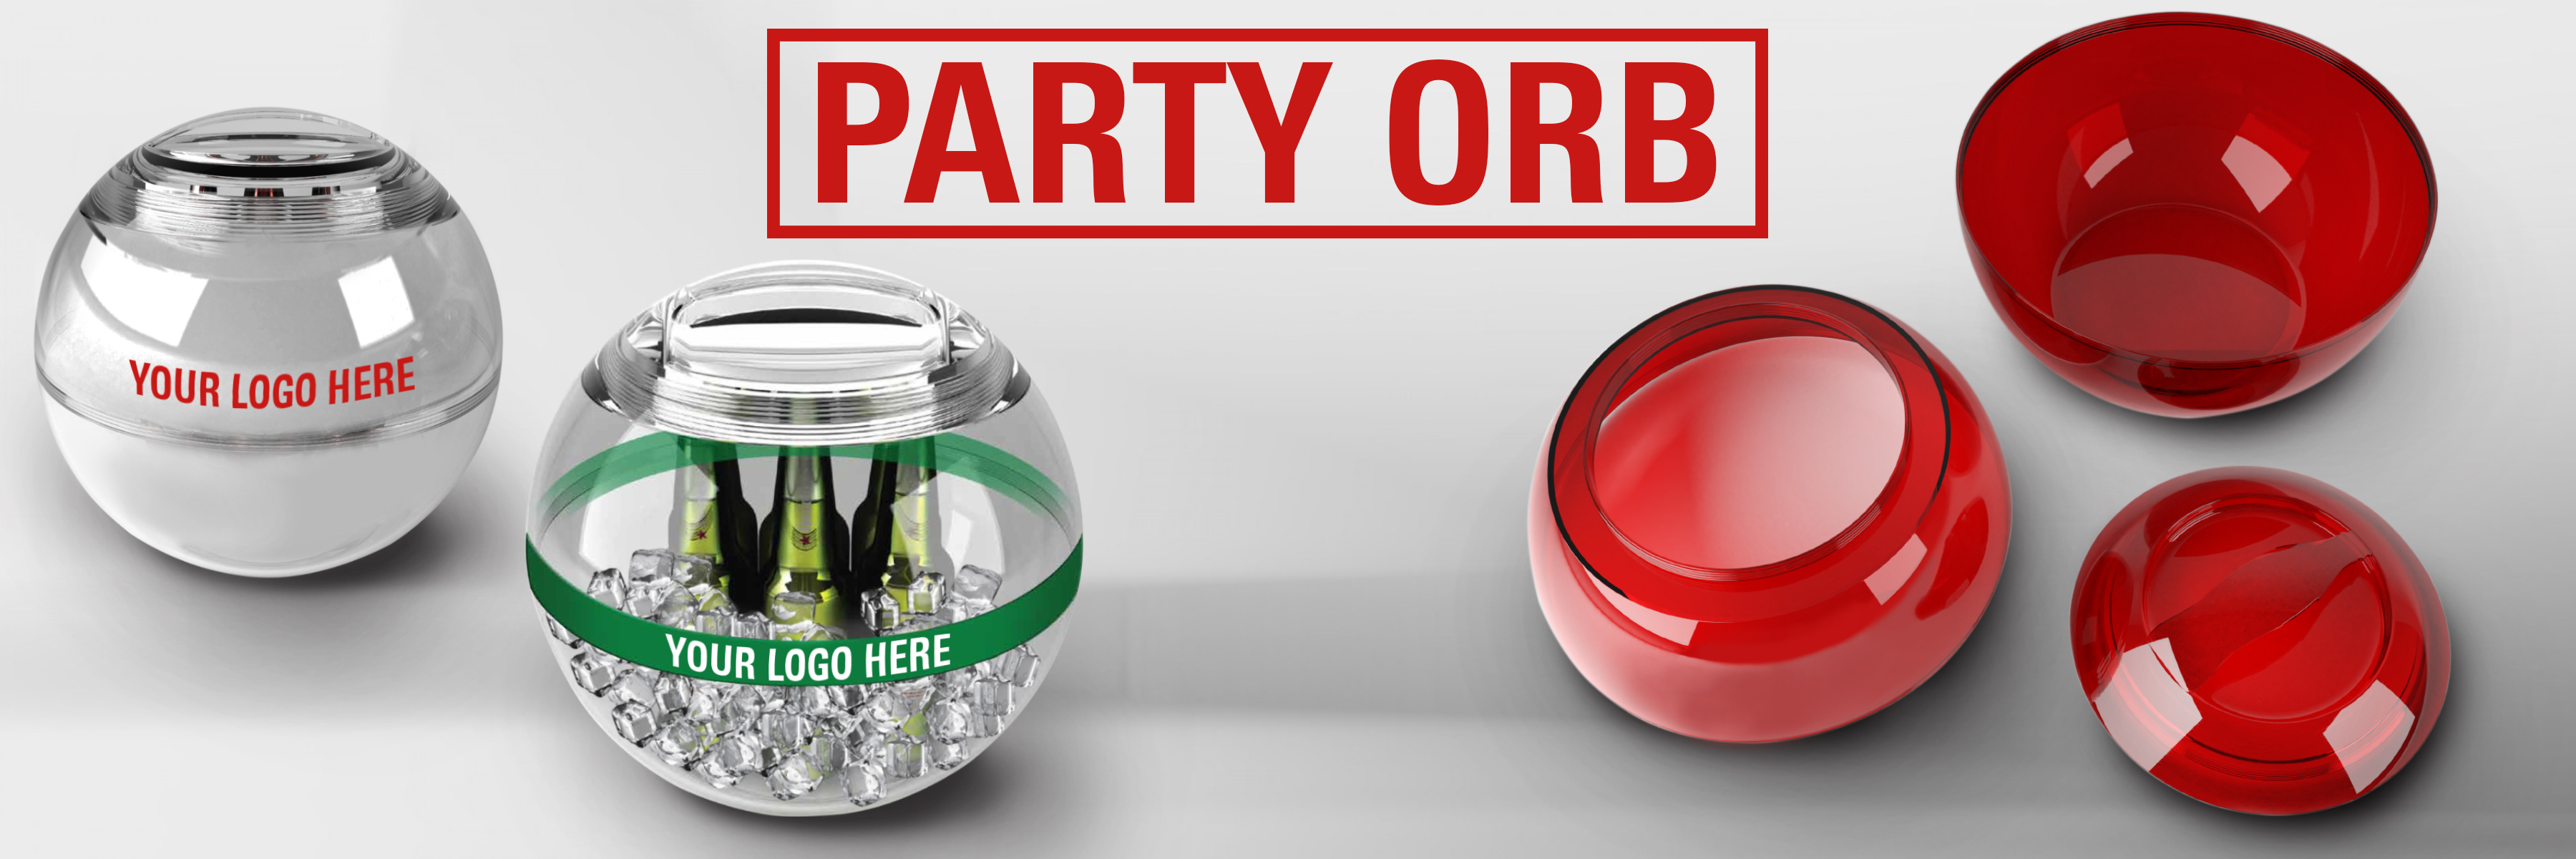 Party Orb